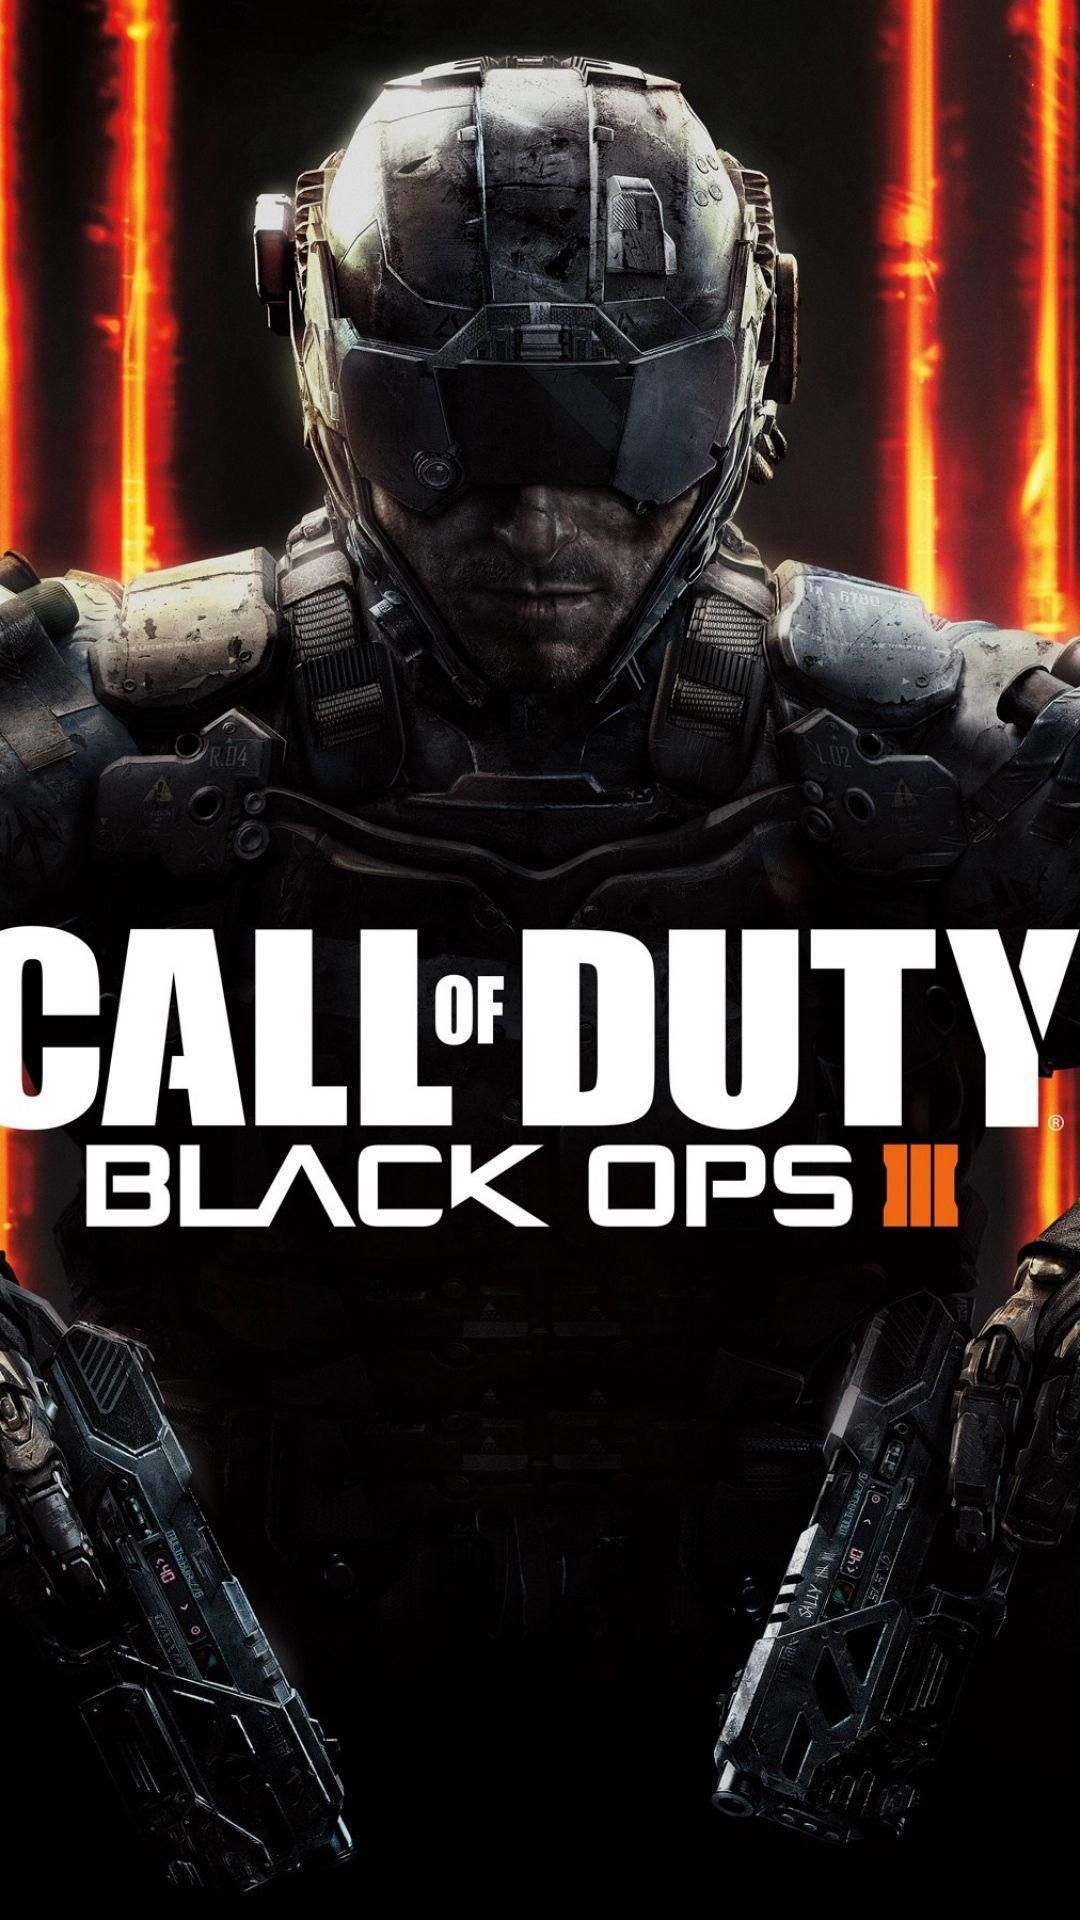 Spectre Call Of Duty Black Ops 3 Wallpaper Call Of Duty Black Ops Iii Call Of Duty Black Ops 3 Call Of Duty Black